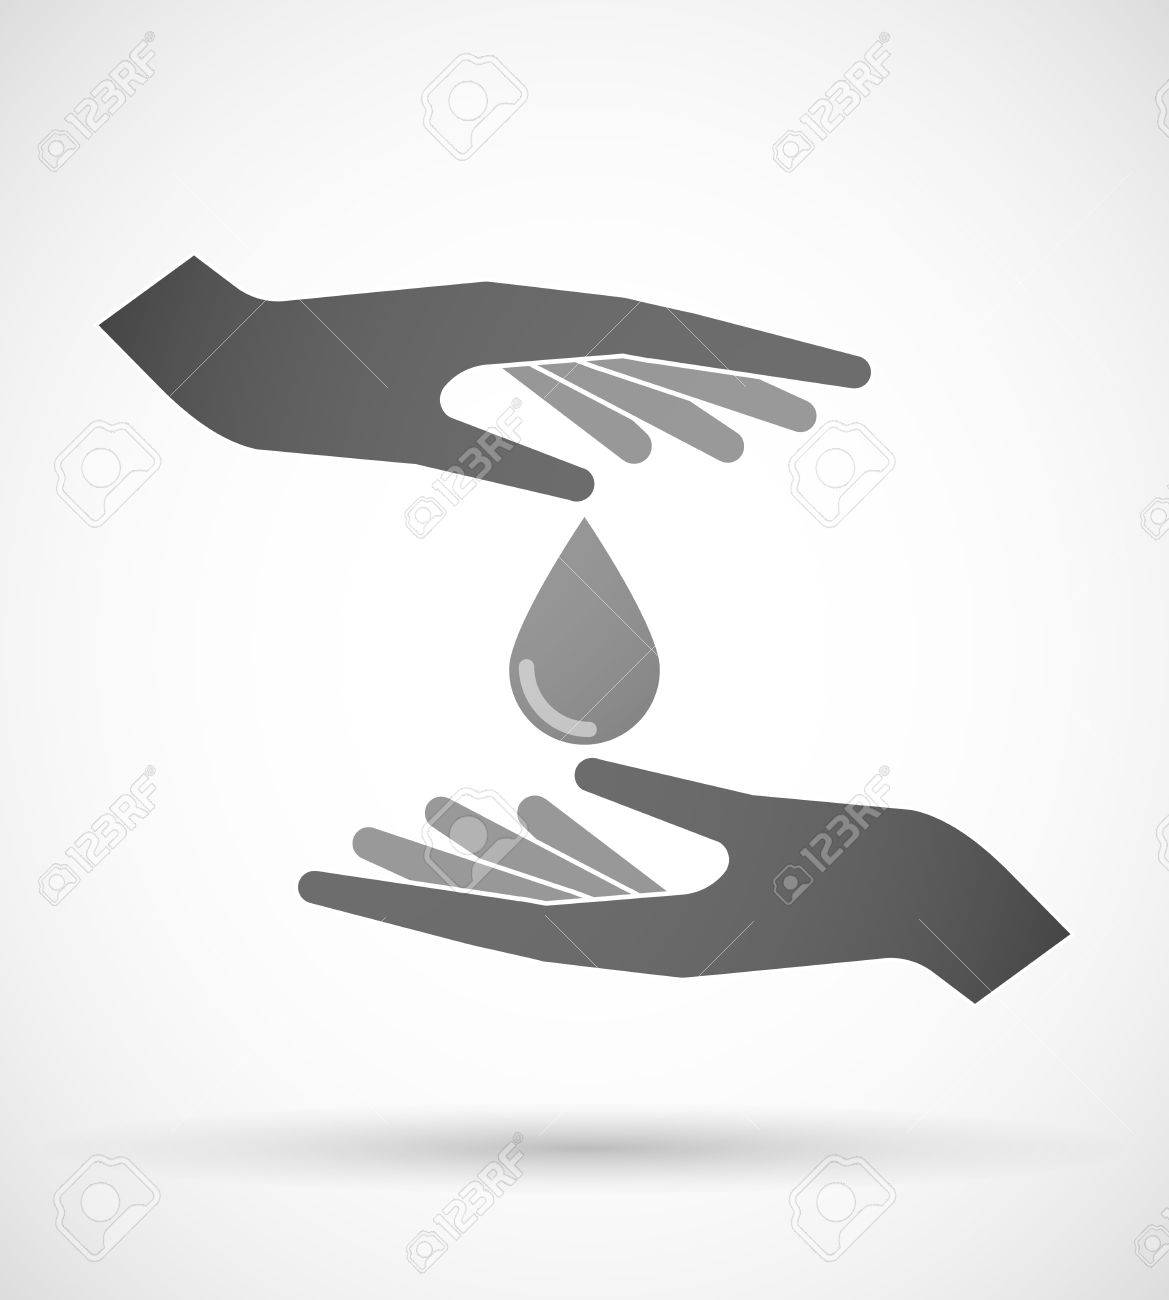 Two Hands Protecting Or Giving A Blood Drop Royalty Free Cliparts